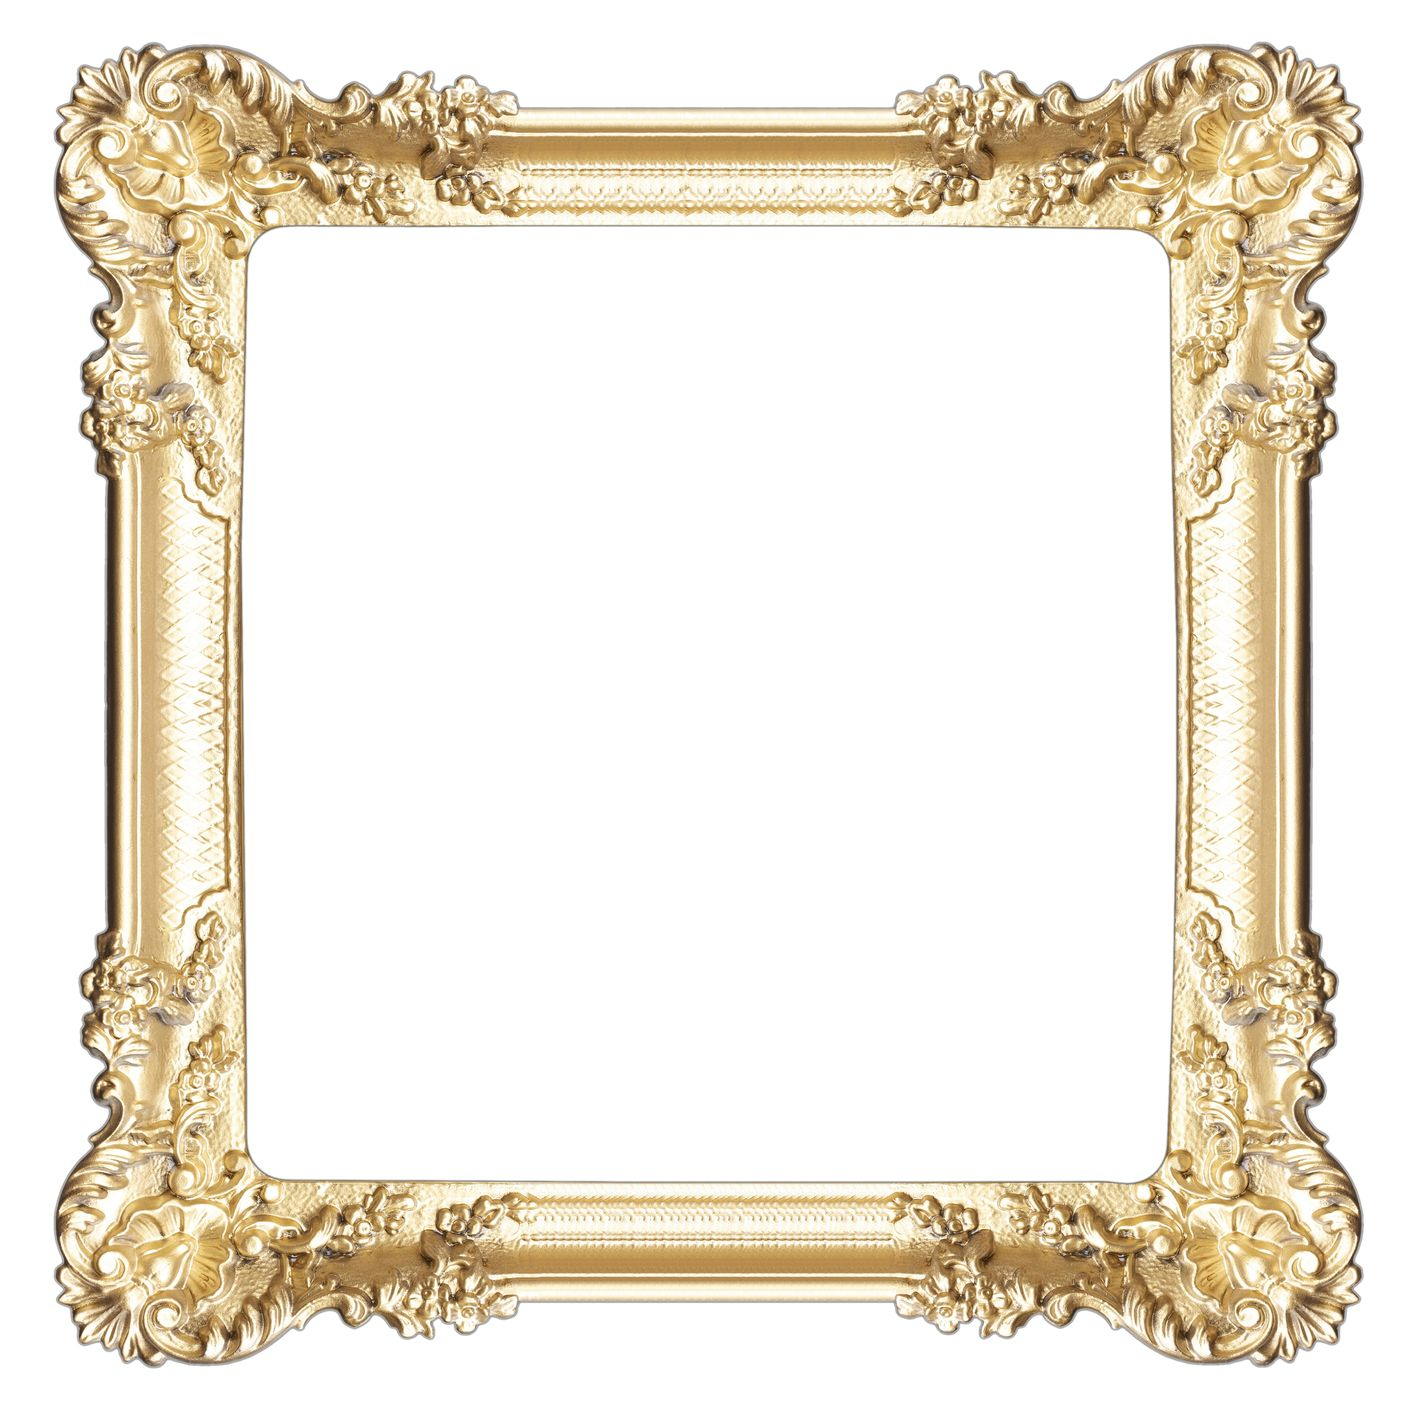 antique picture frame | اطارات | Pinterest